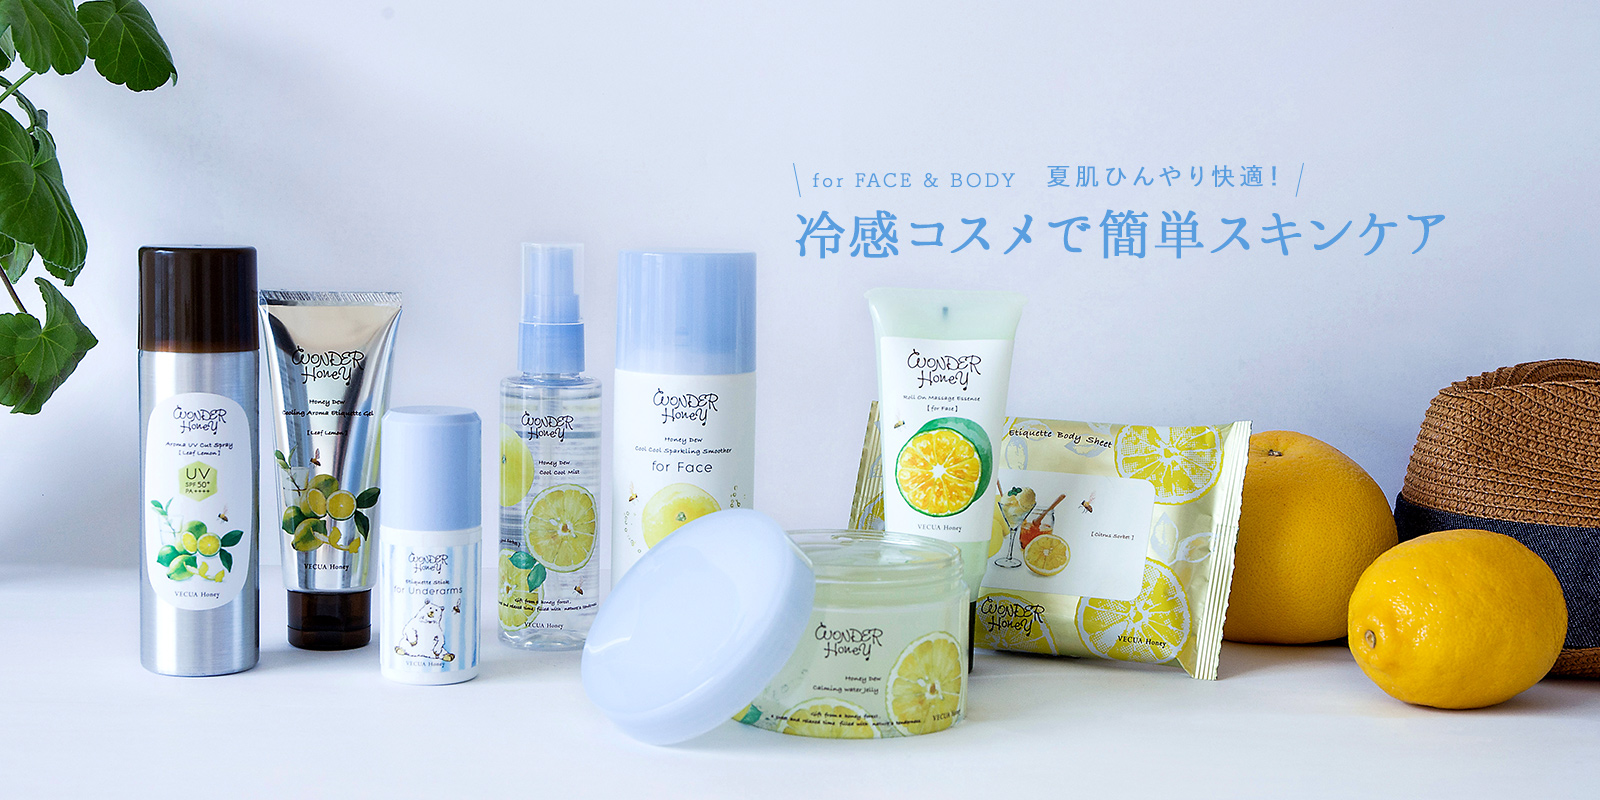 for FACE & BODY 冷感コスメで簡単スキンケア